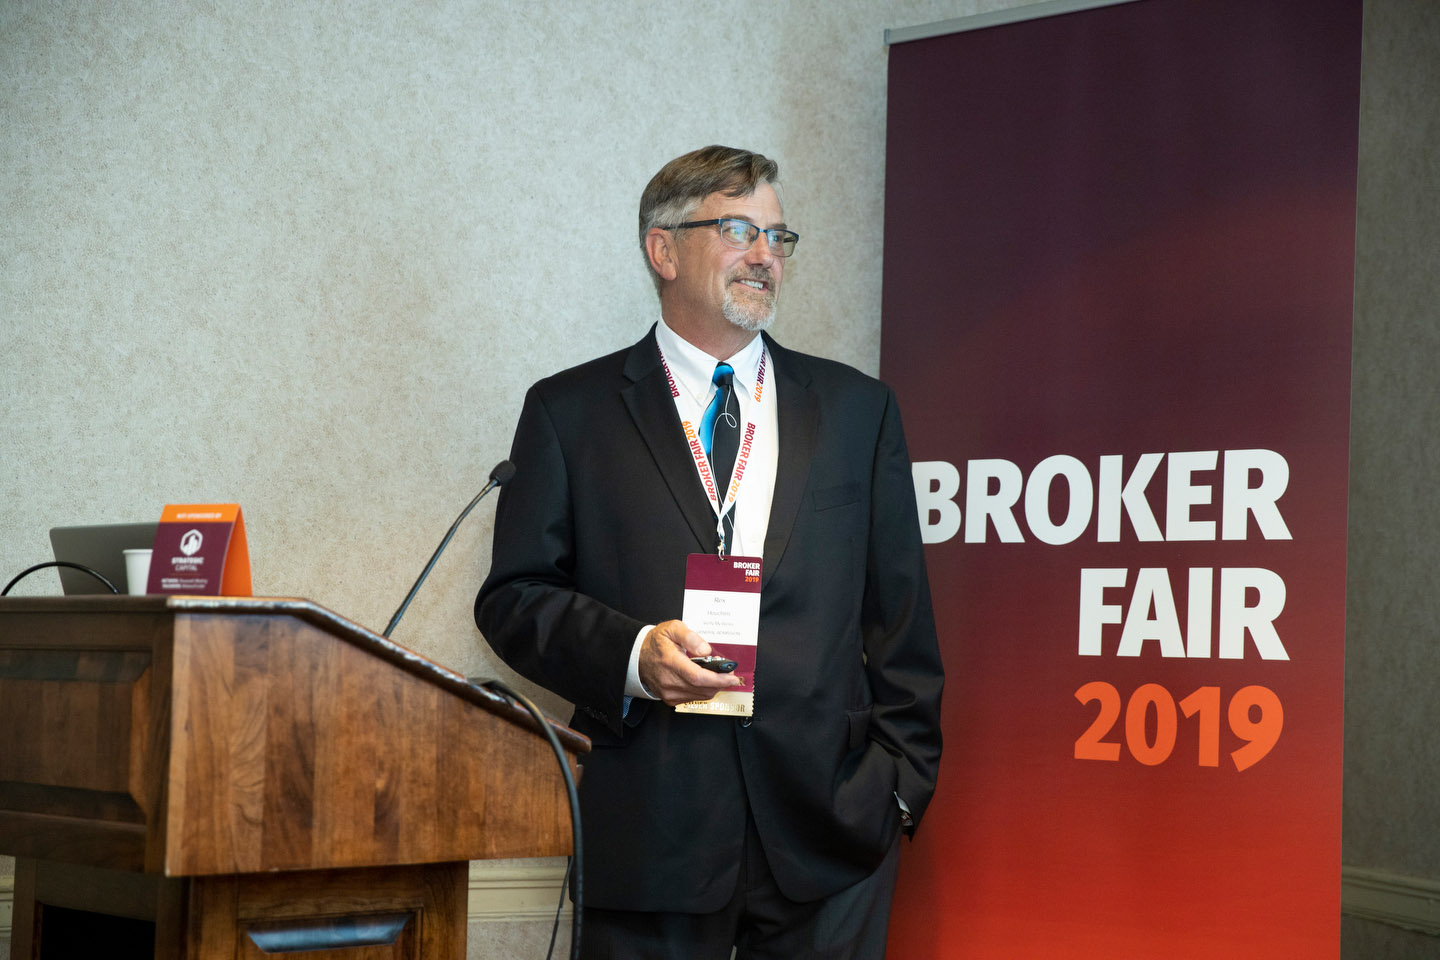 Broker Fair 2019 - Presented by deBanked - 232